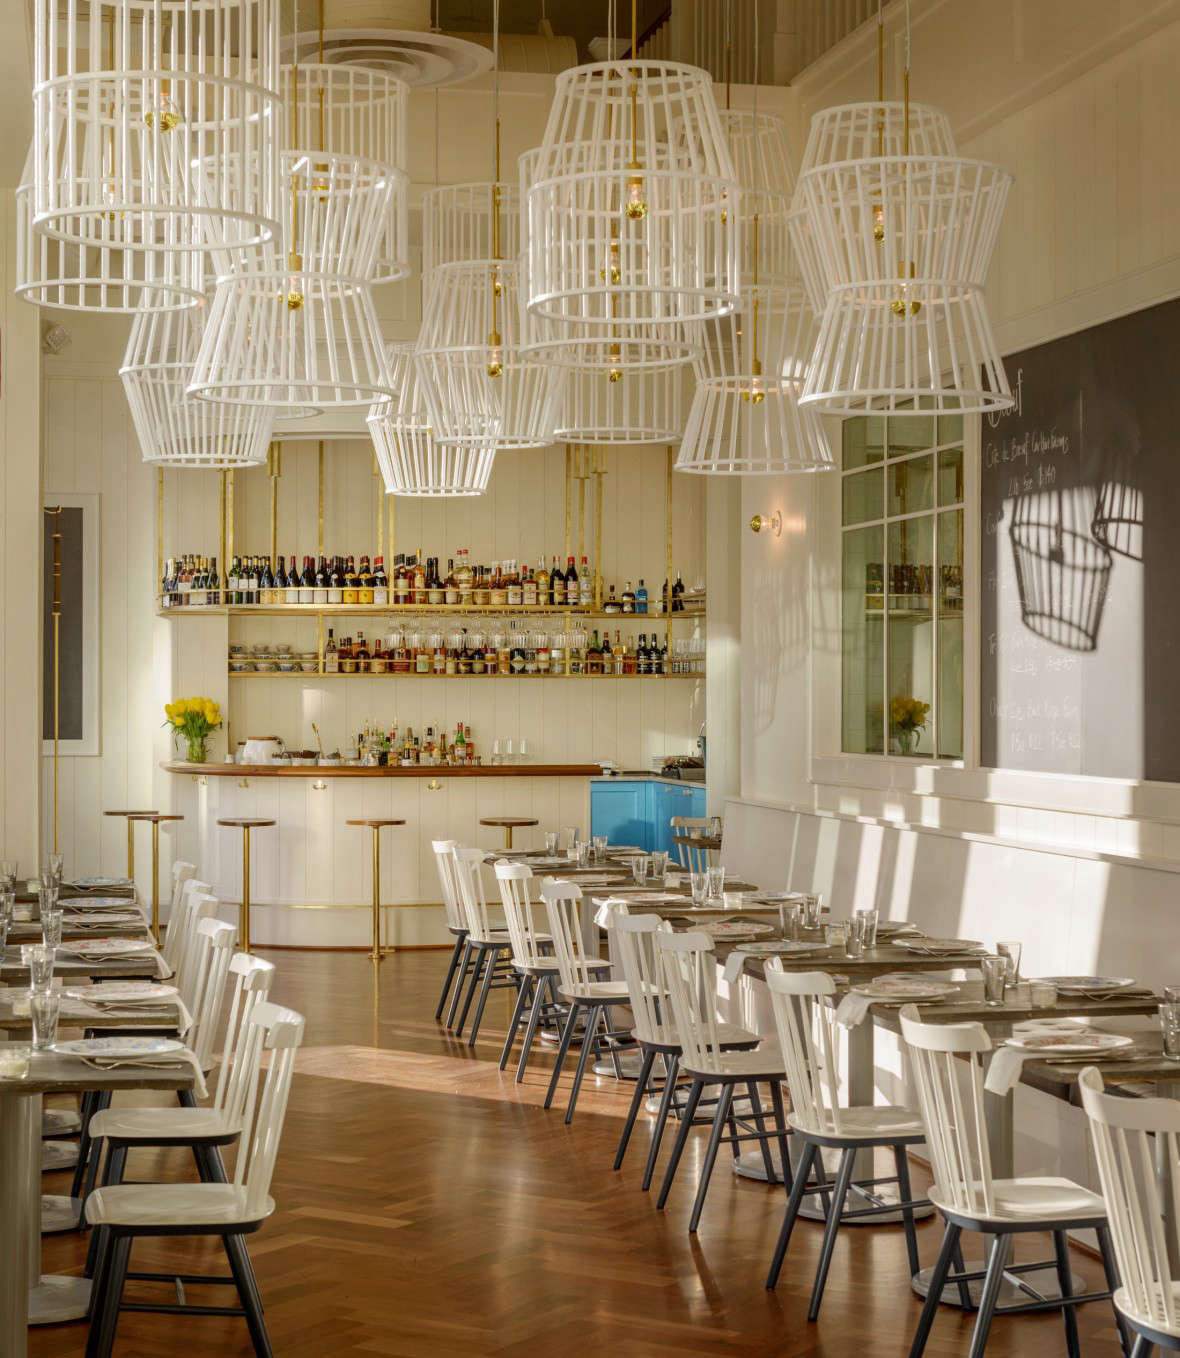 Bateau is Erickson's take on a steakhouse and a reimagining of Boat Street Cafe. It servesmeat that has been raised, butchered, aged, and cooked in-house, between the Bateau kitchen and Erickson&#8